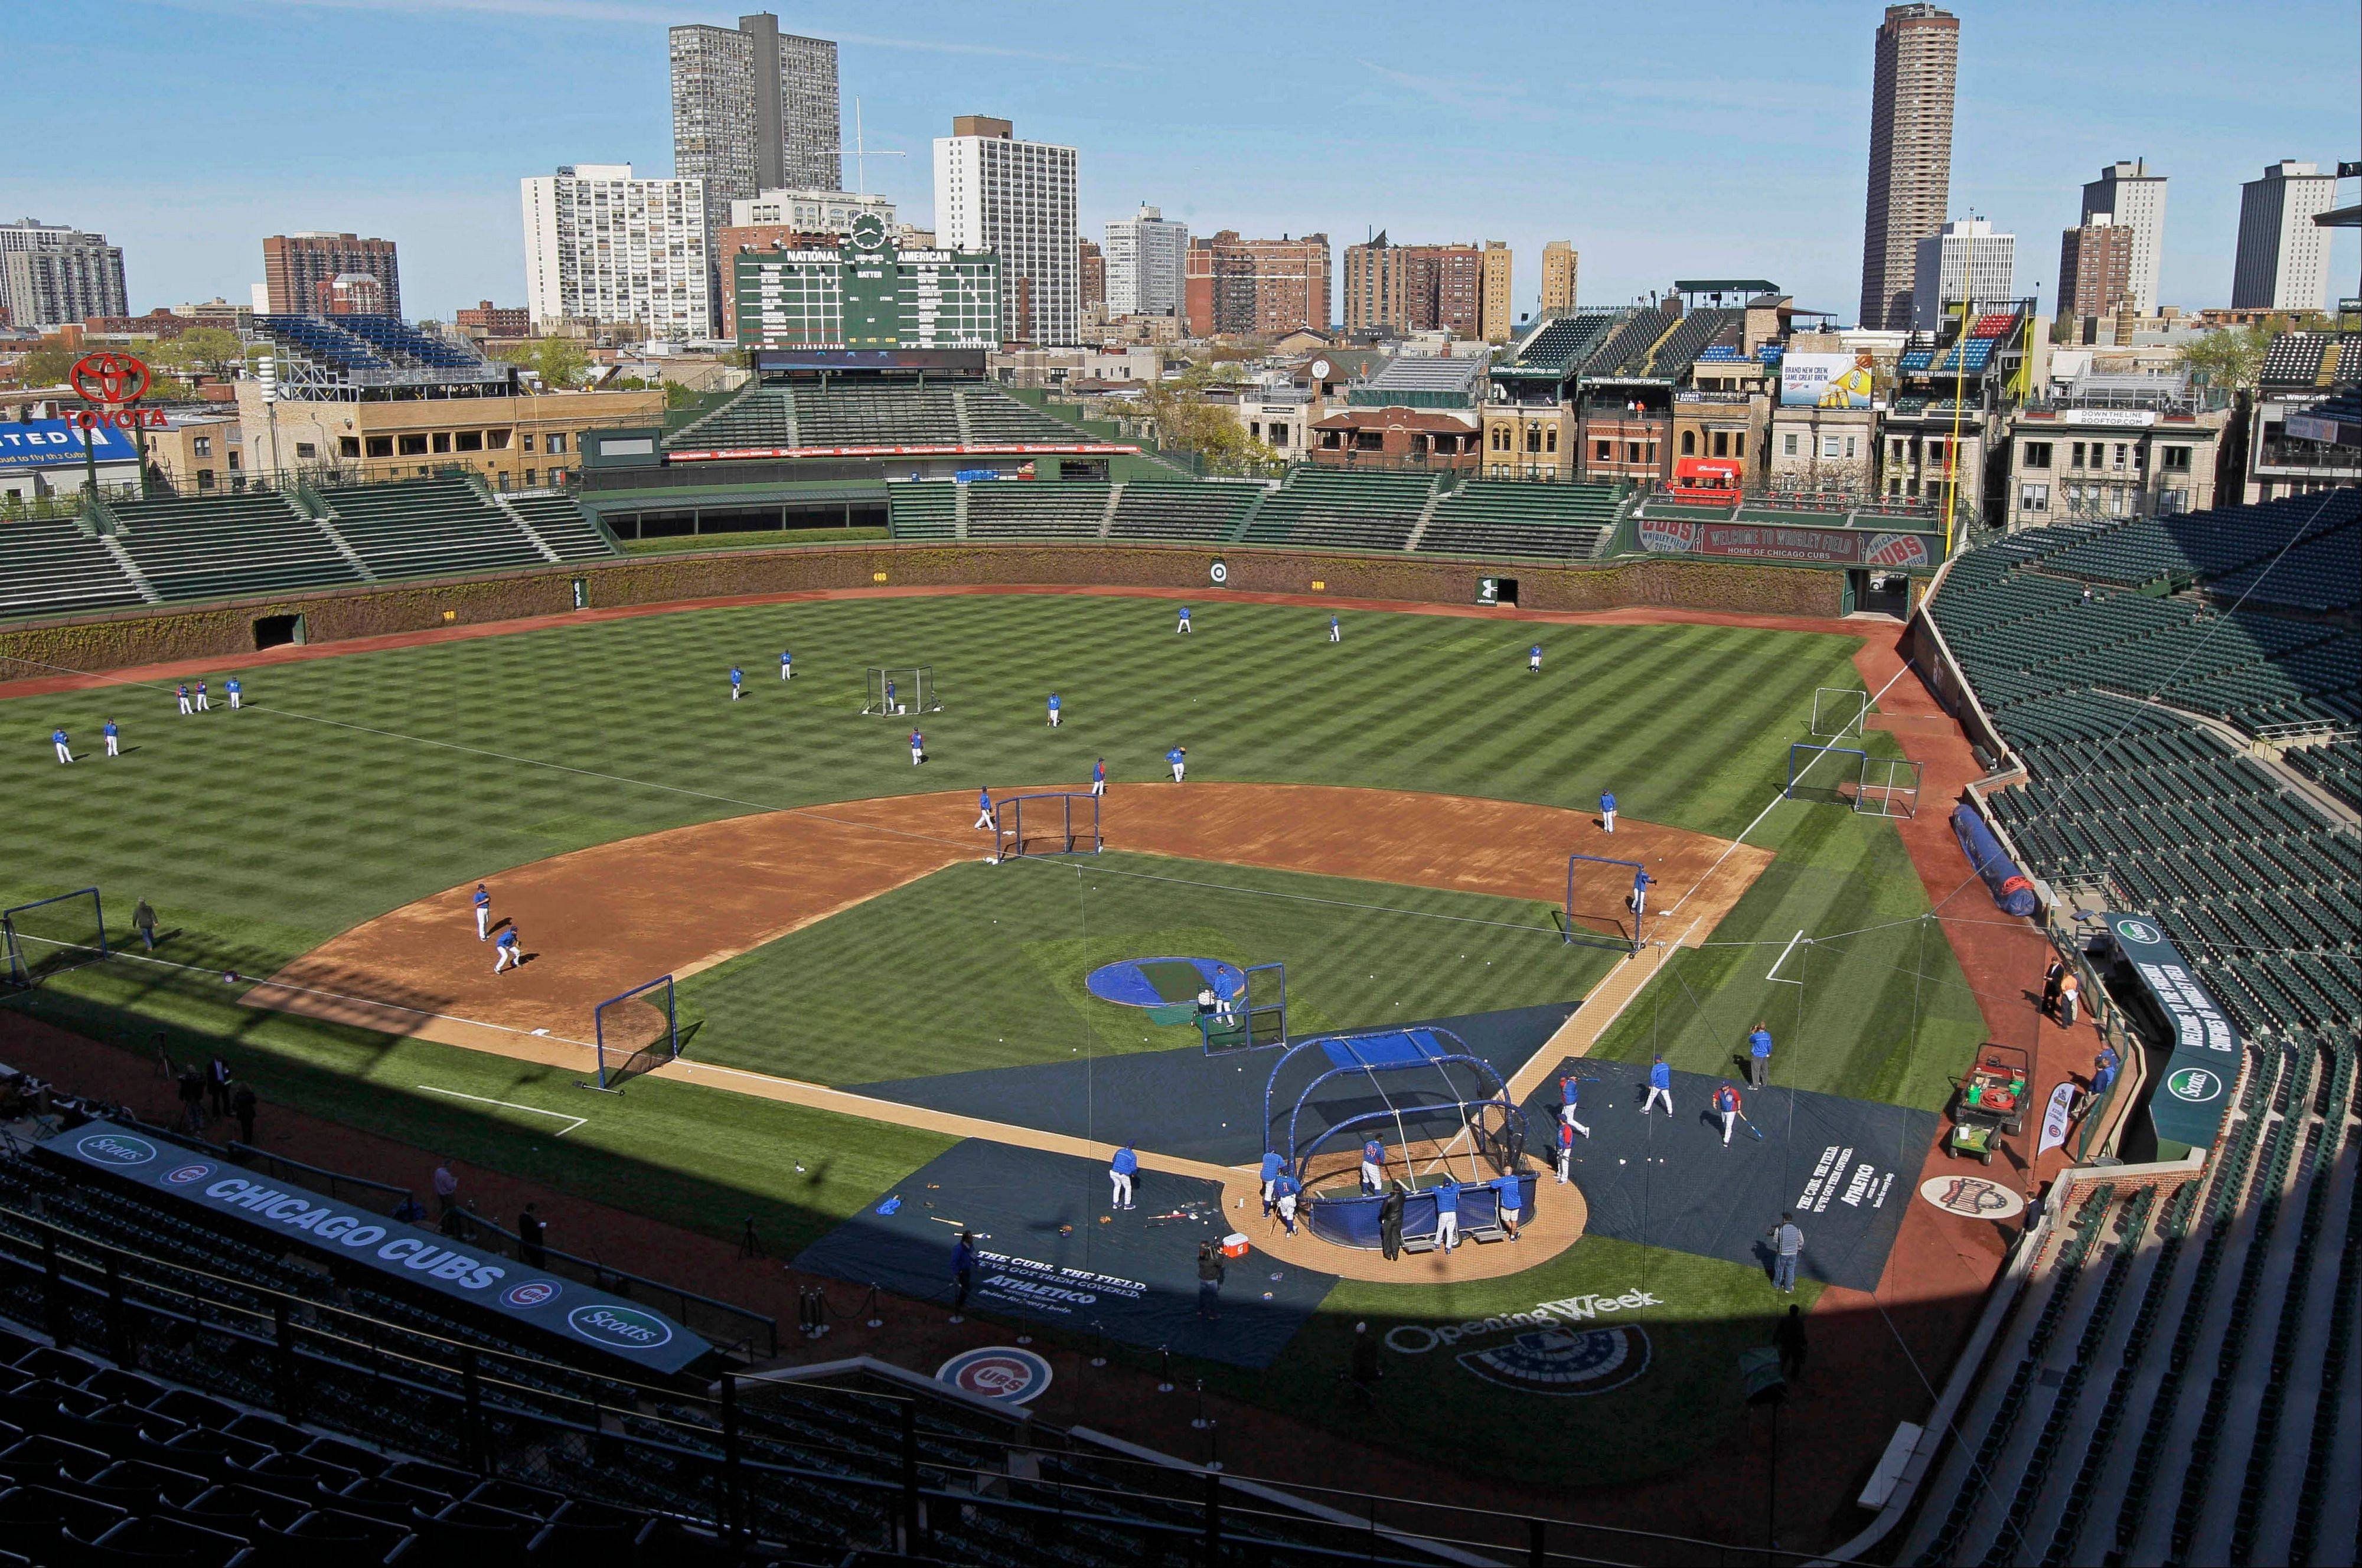 This view of Wrigley Field from 2012 might be much different by 2014. The planned $500 million renovation probably will include a 6,000-square-foot video screen above the left-field bleachers.